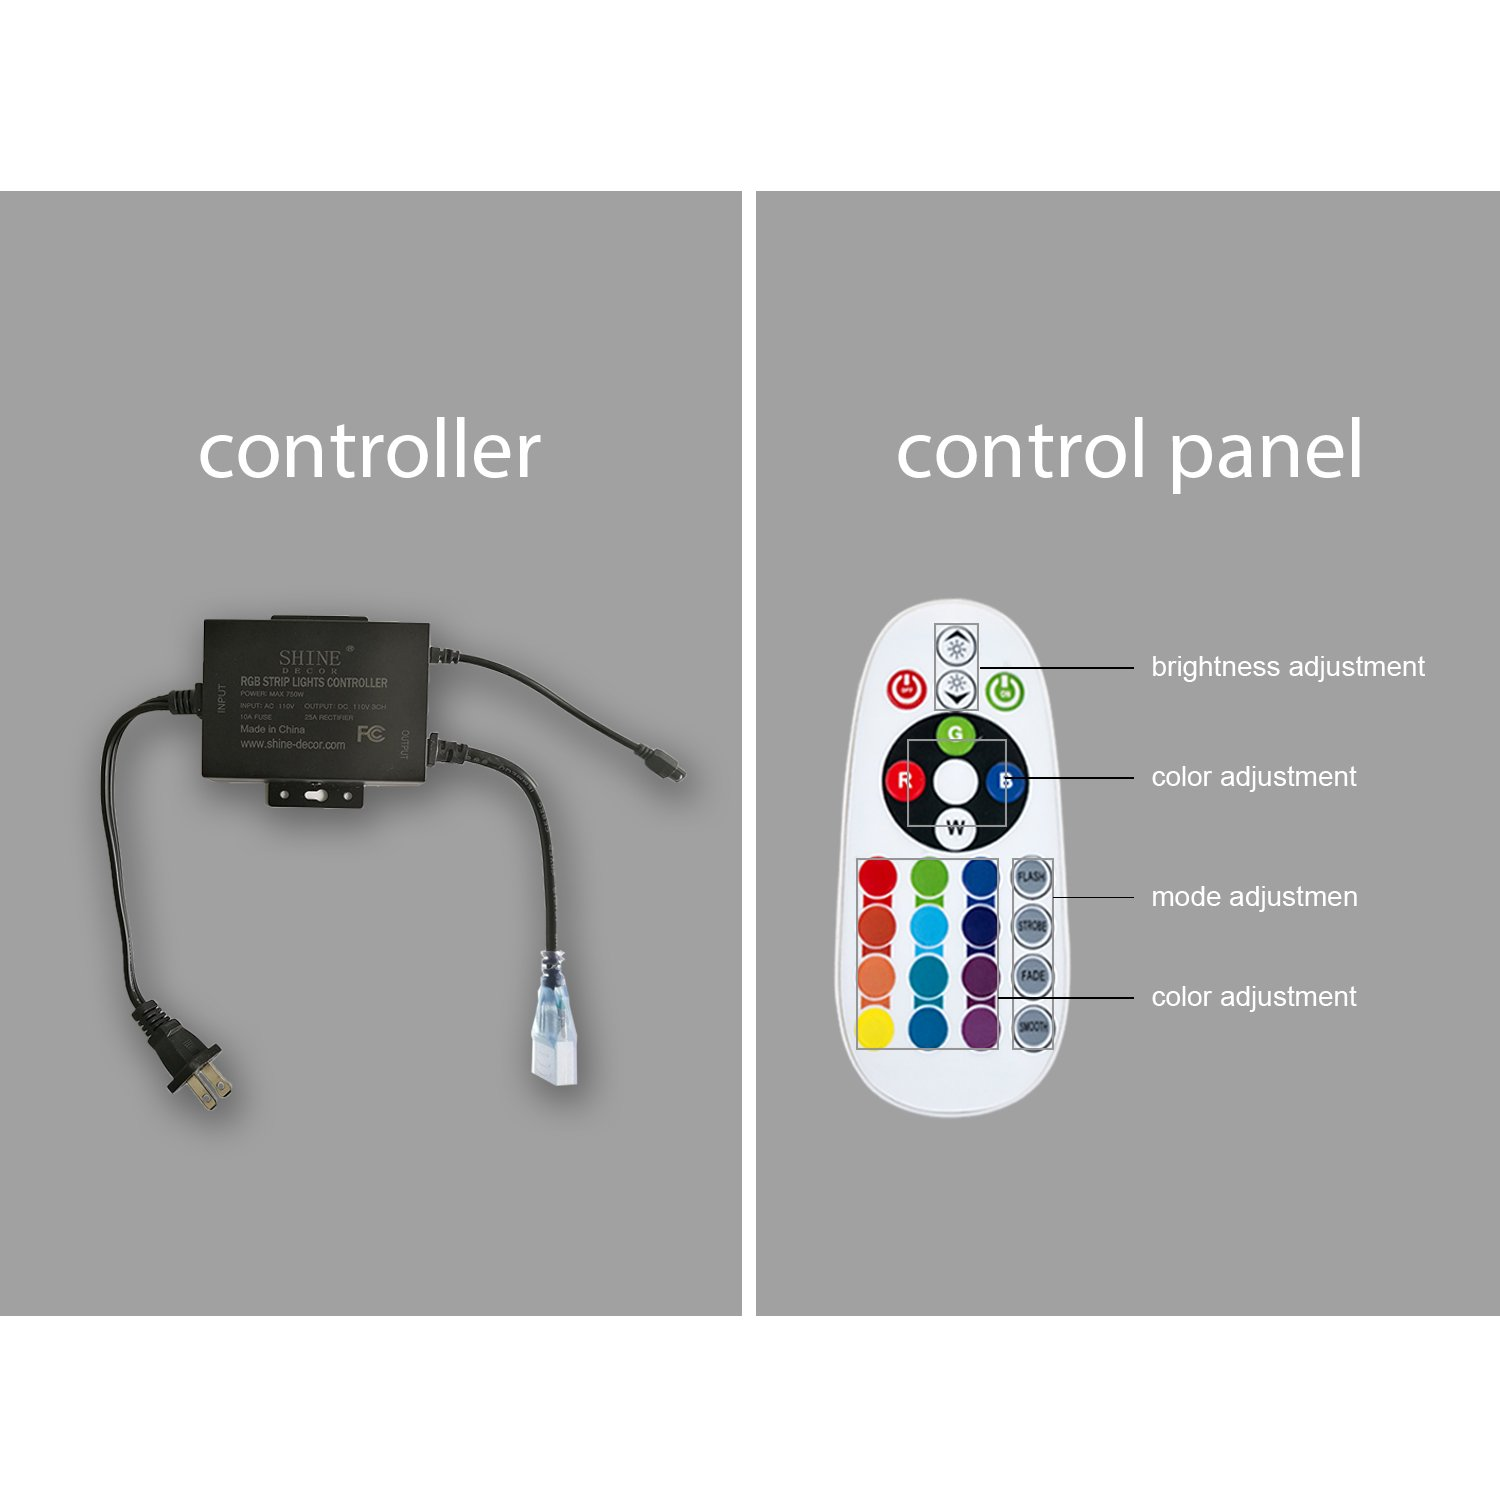 shine decor Power Supply Adapter with IR Receiver +24 Keys Remote Control, 2pc end Cap, 5pc 5mm Heat shrinkable Tube, 5pc pin,1pc Connector for Shine Décor LED RGB neon Lights only